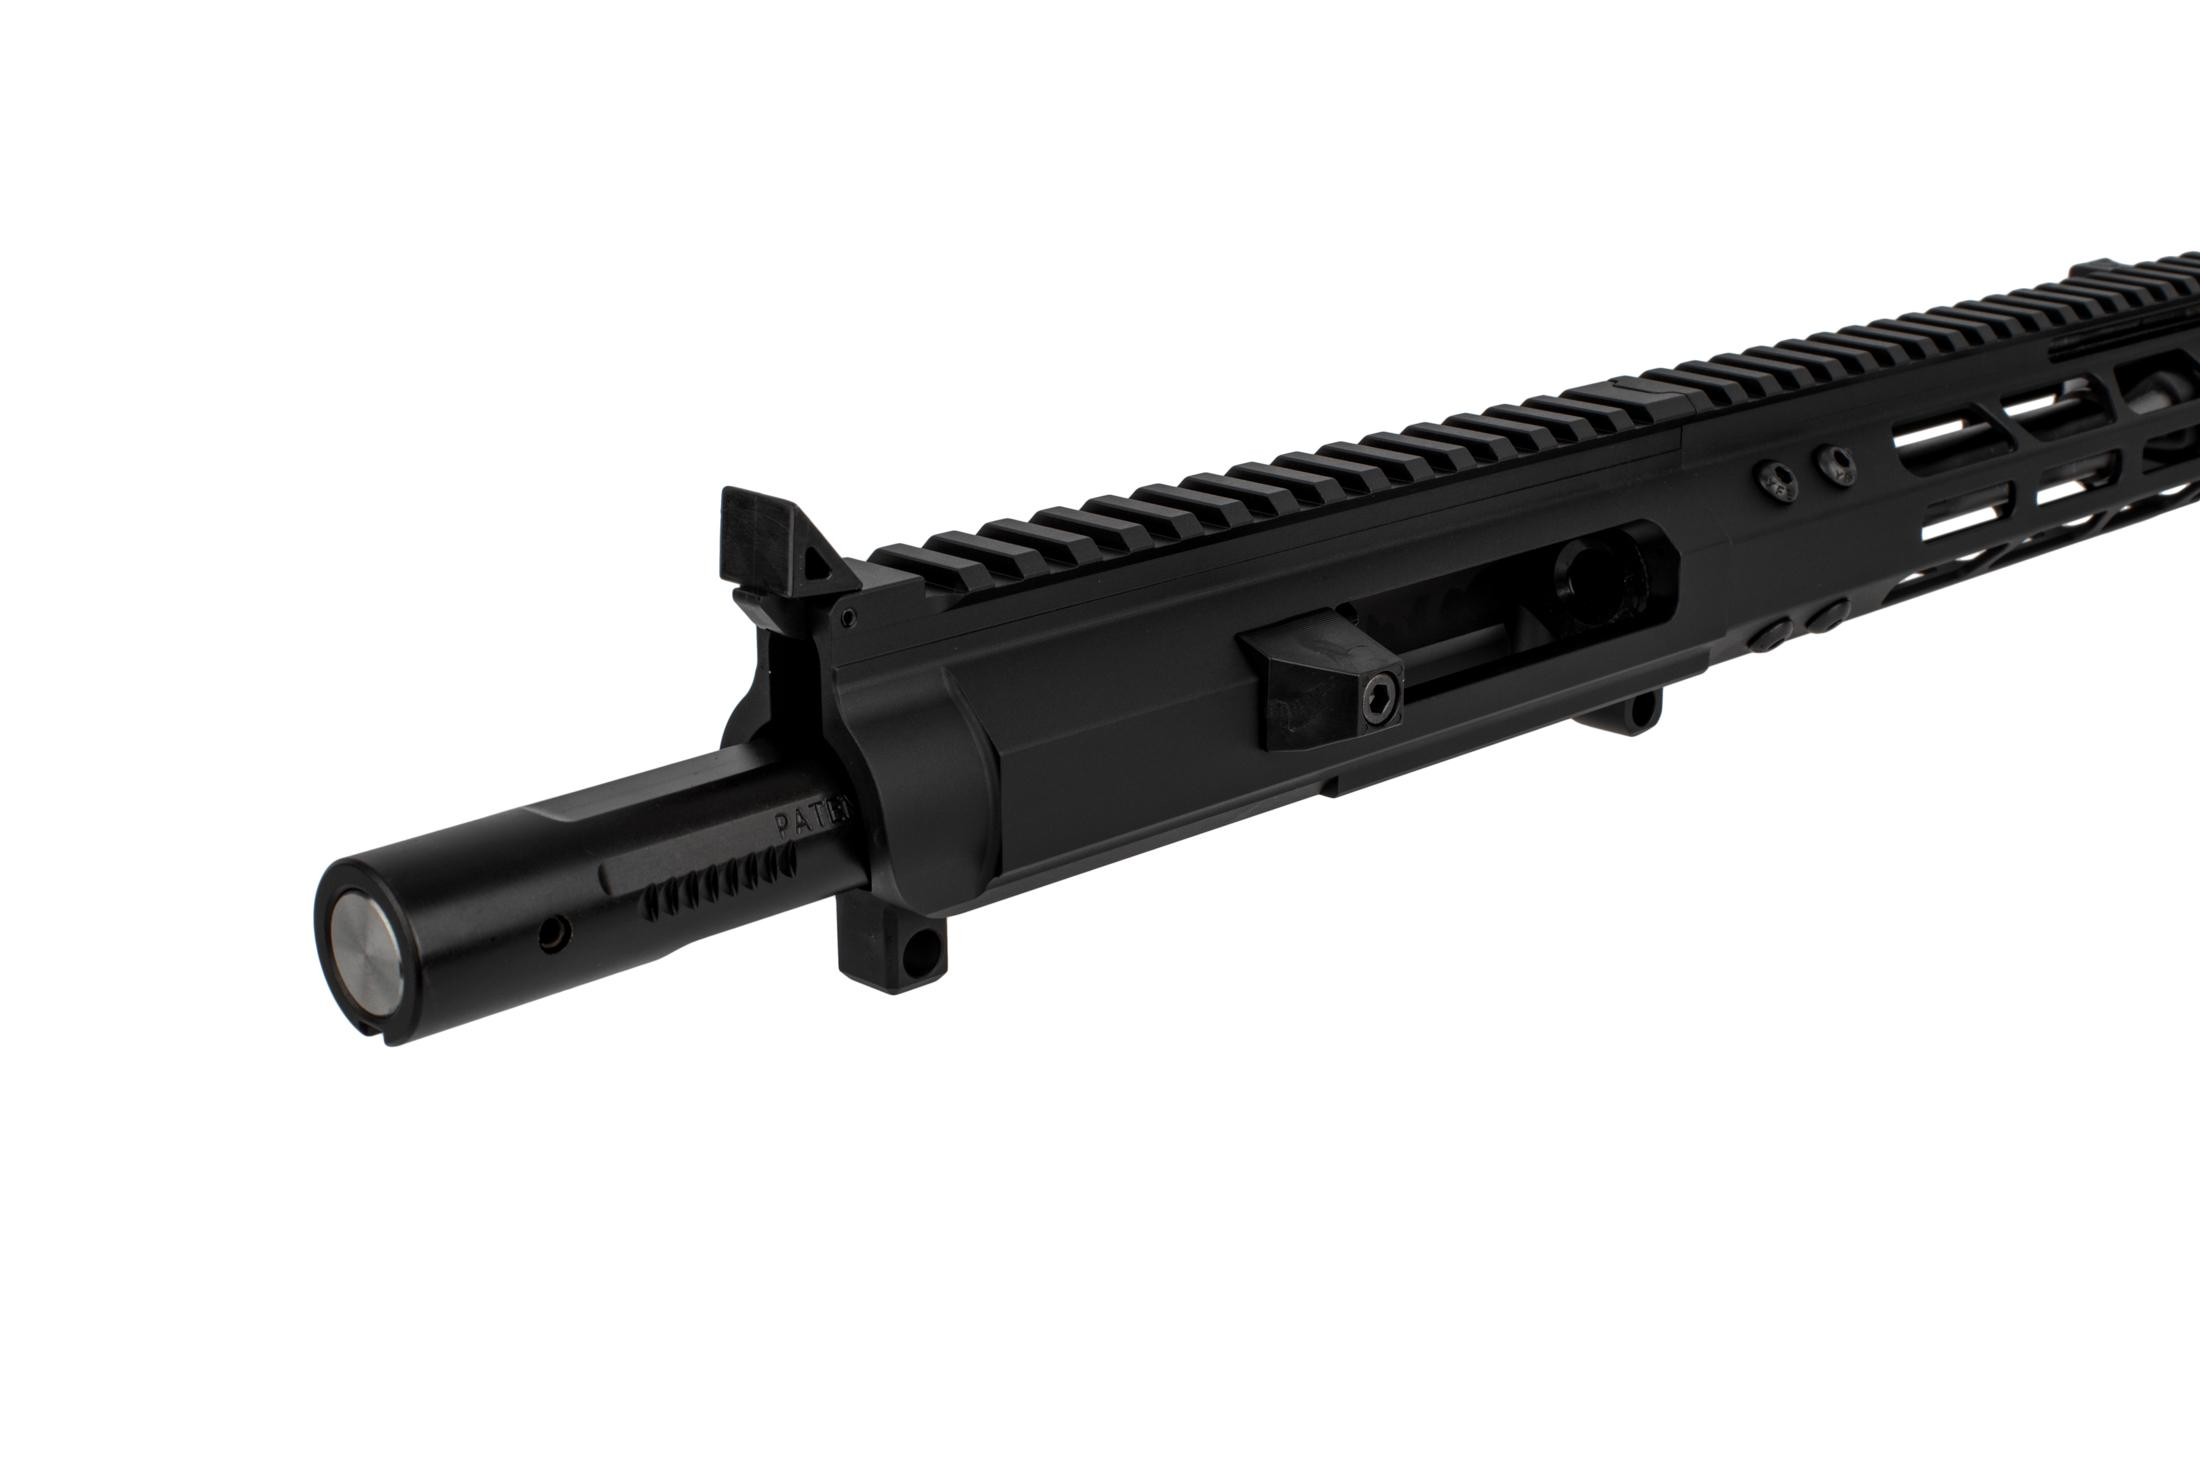 "Foxtrot Mike Products Complete 9mm AR Upper 7 Glock Style - 8.75"" M-LOK Rail - Blast Diffuser"